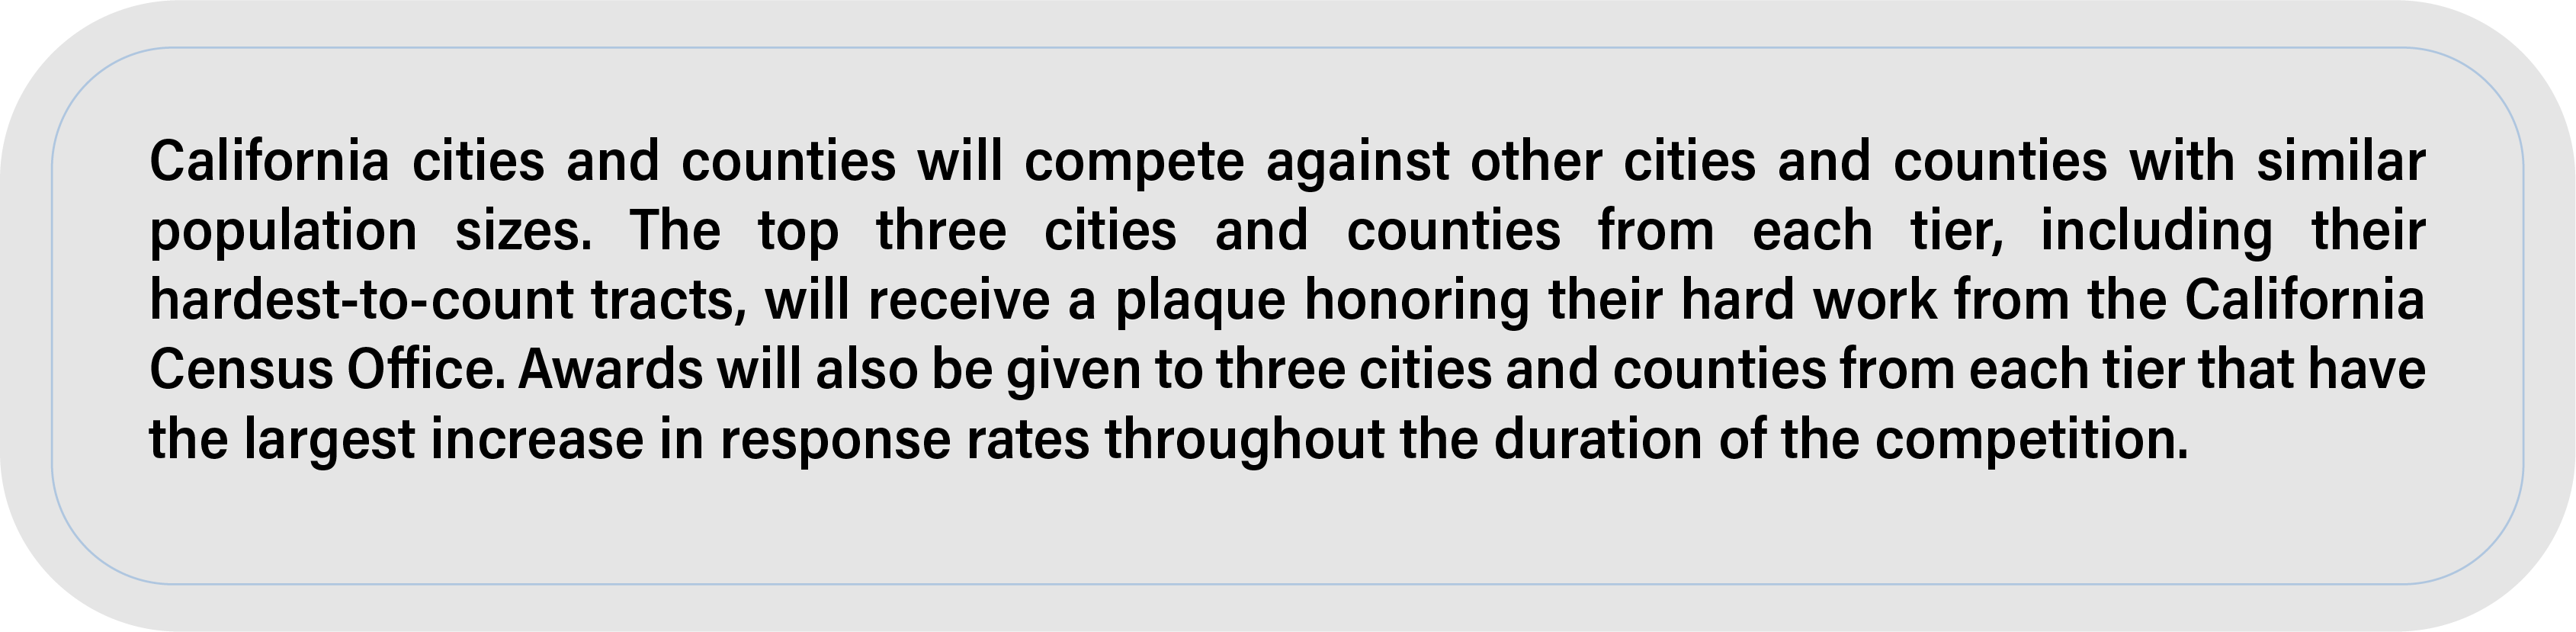 California cities and counties will compete against other cities and counties with similar population sizes. The top three cities and counties from each tier, including their hardest-to-count tracts, will receive a plaque honoring their hard work from the California Census Office. Awards will also be given to three cities and counties from each tier that have the largest increase in response rates throughout the duration of the competition.